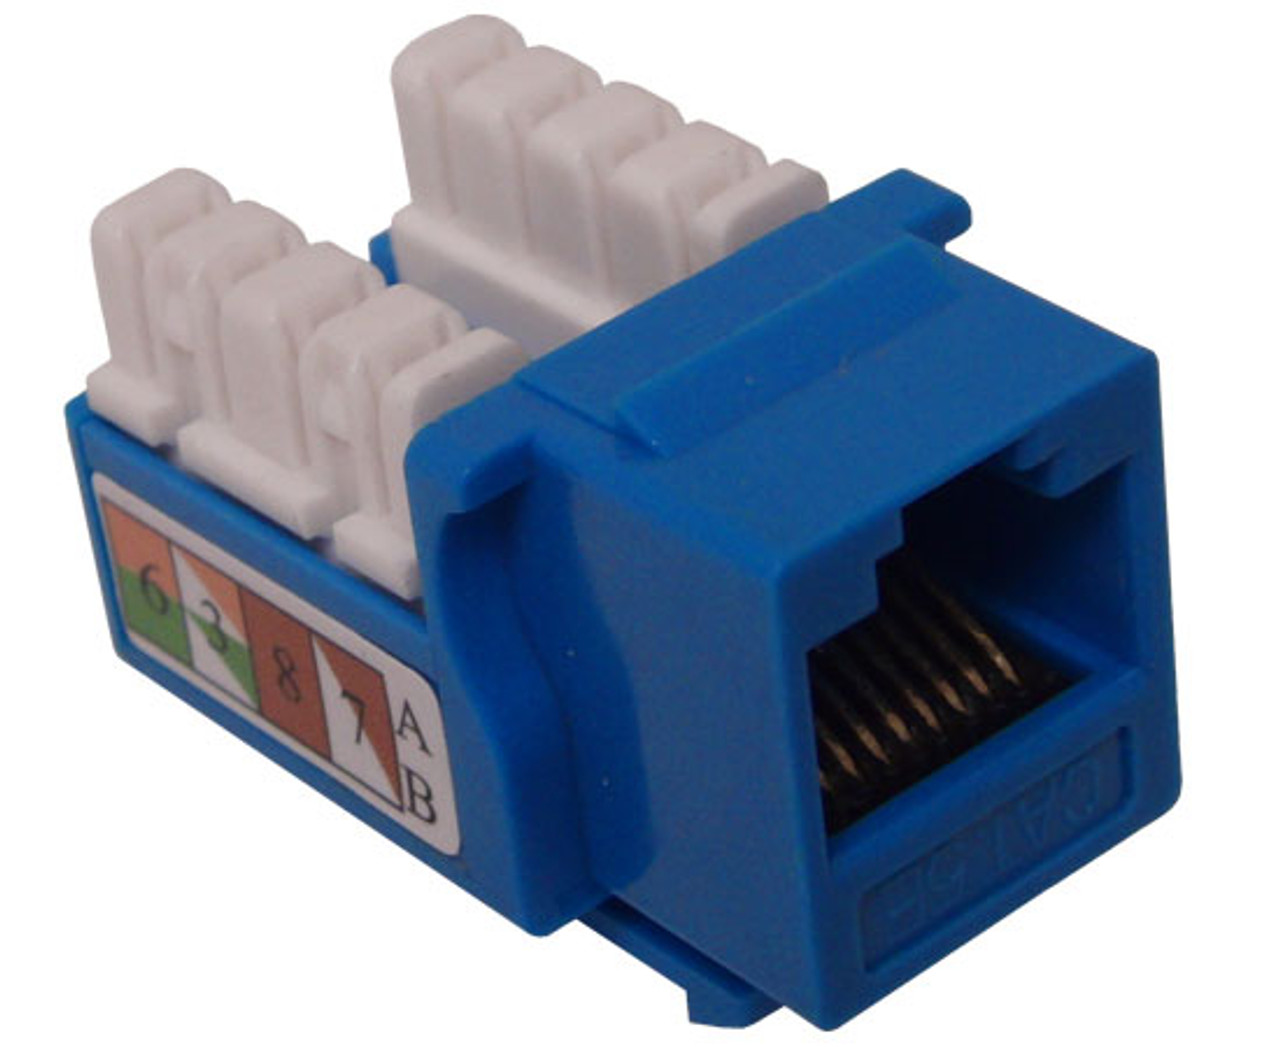 medium resolution of category 6 keystone computer jacks cablesupply blue rj45 computer jack cat6 110 punch down cablesupply